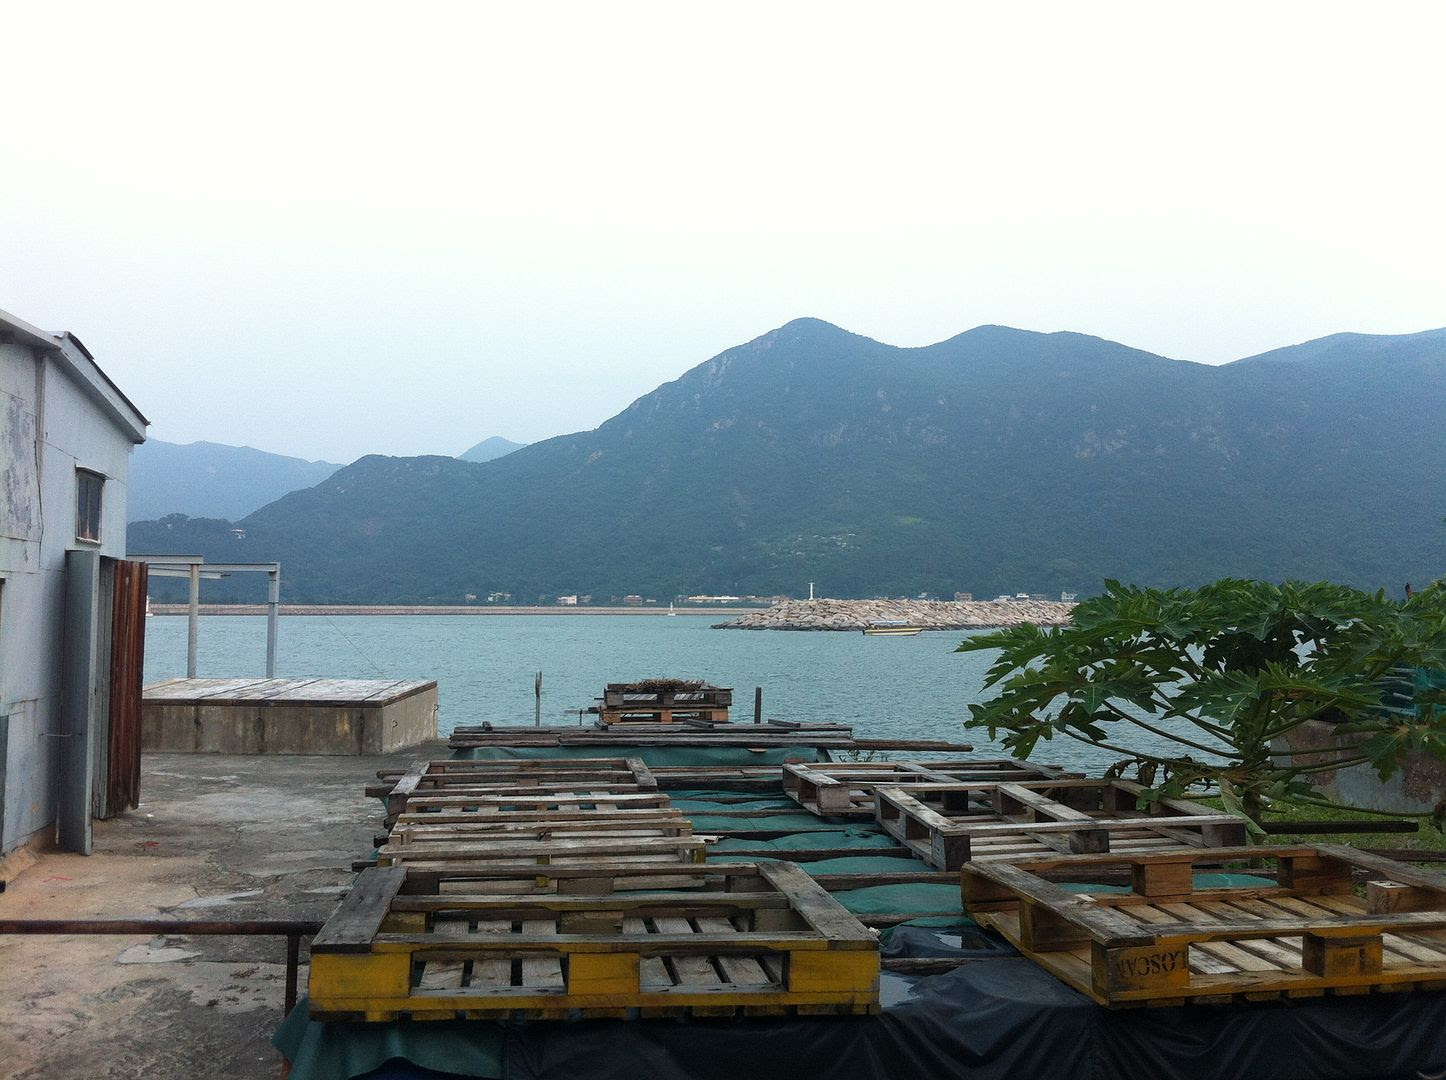 Tai O Fishing Village Near Hong Kong photo 2013-10-011740_zps99cbb764.jpg